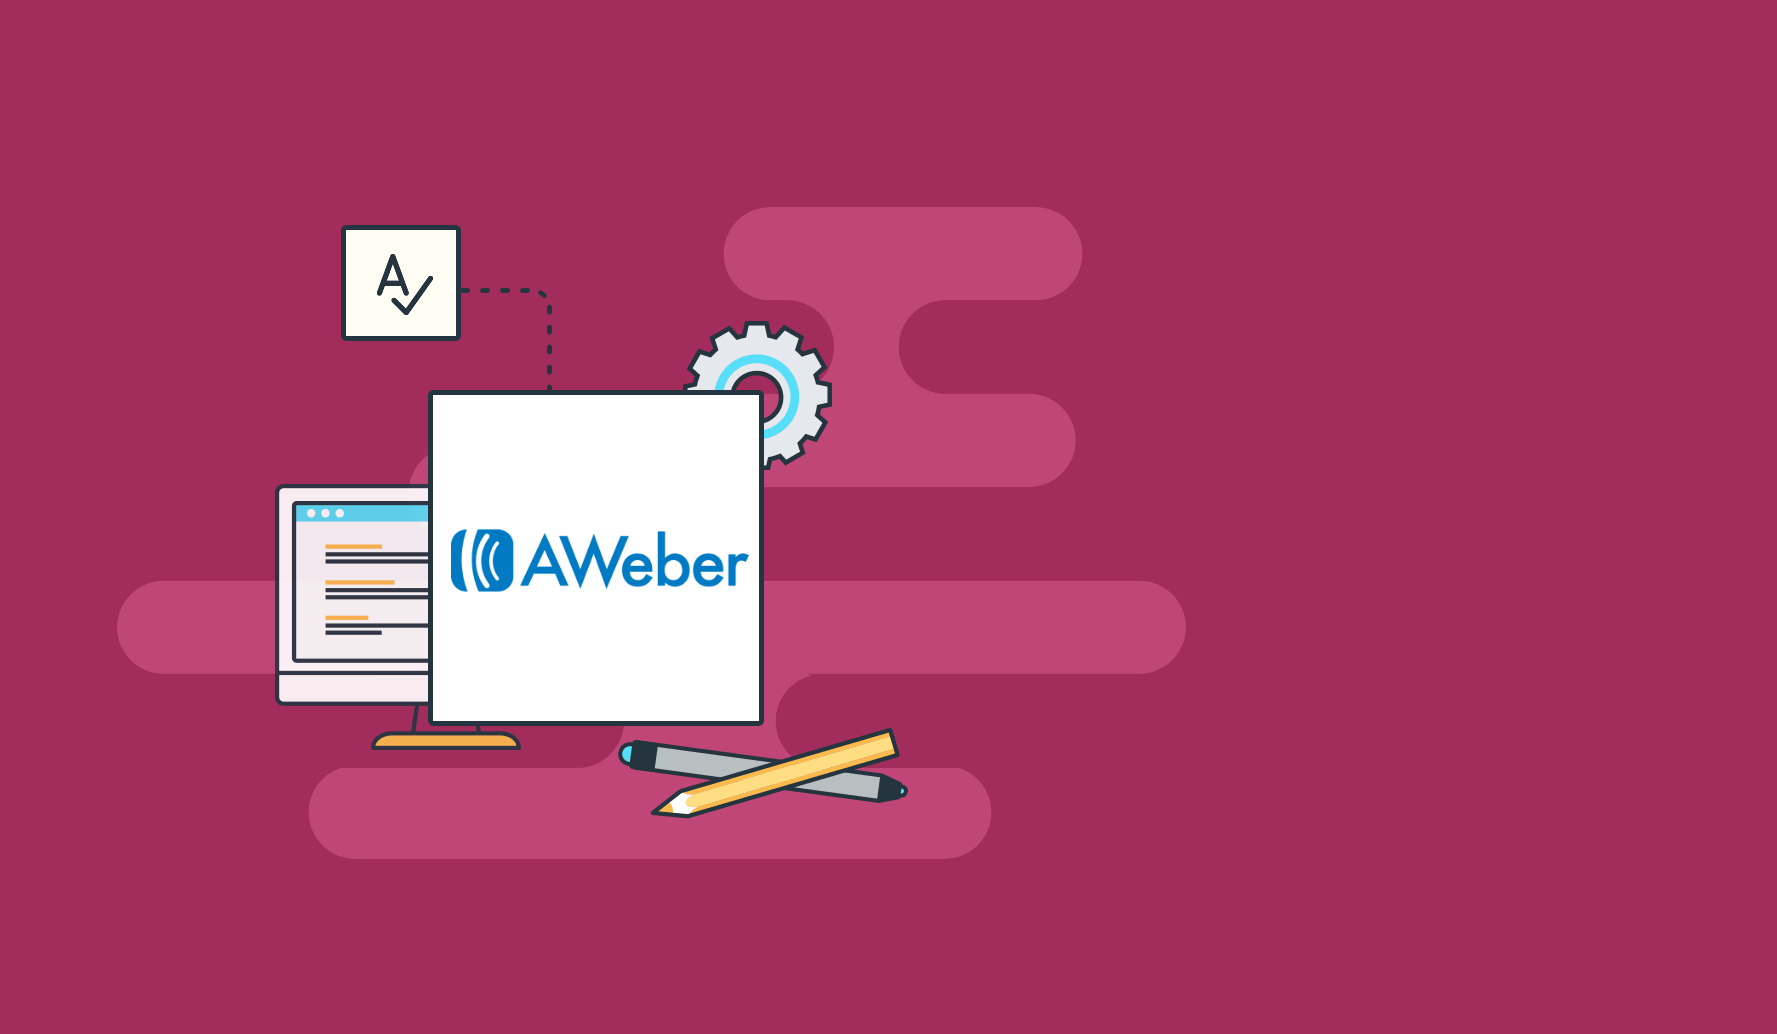 Buy Aweber Email Marketing Verified Promo Code 2020